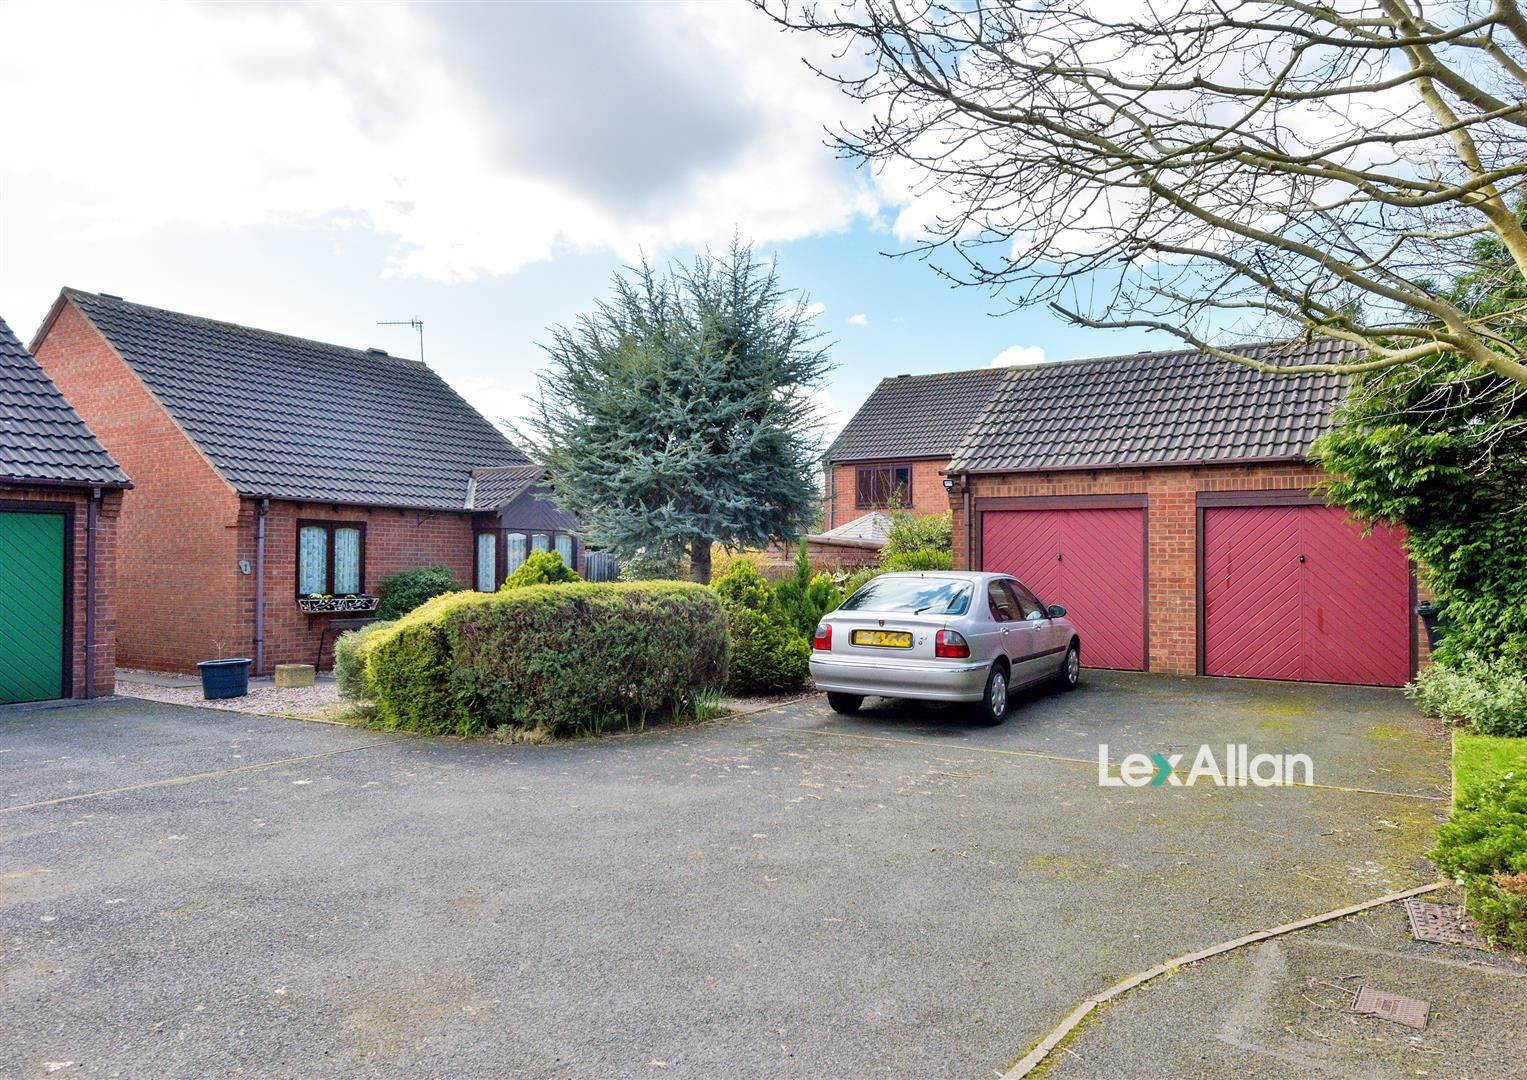 2 bed detached-bungalow for sale, DY5